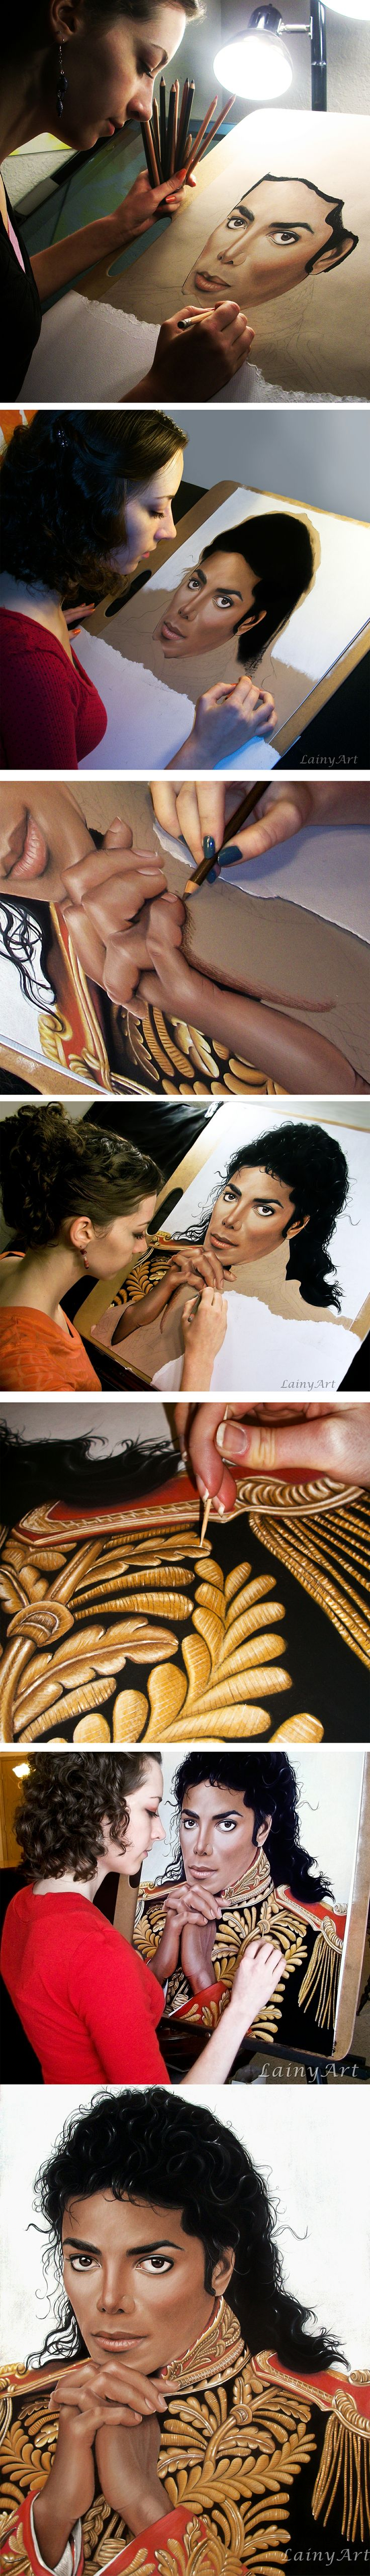 The process of creating my biggest and most realistic portrait to date.   Michael Jackson drawn using pastel pencils and acrylic paint highlights applied with a toothpick. This took me about 200 hours to finish.